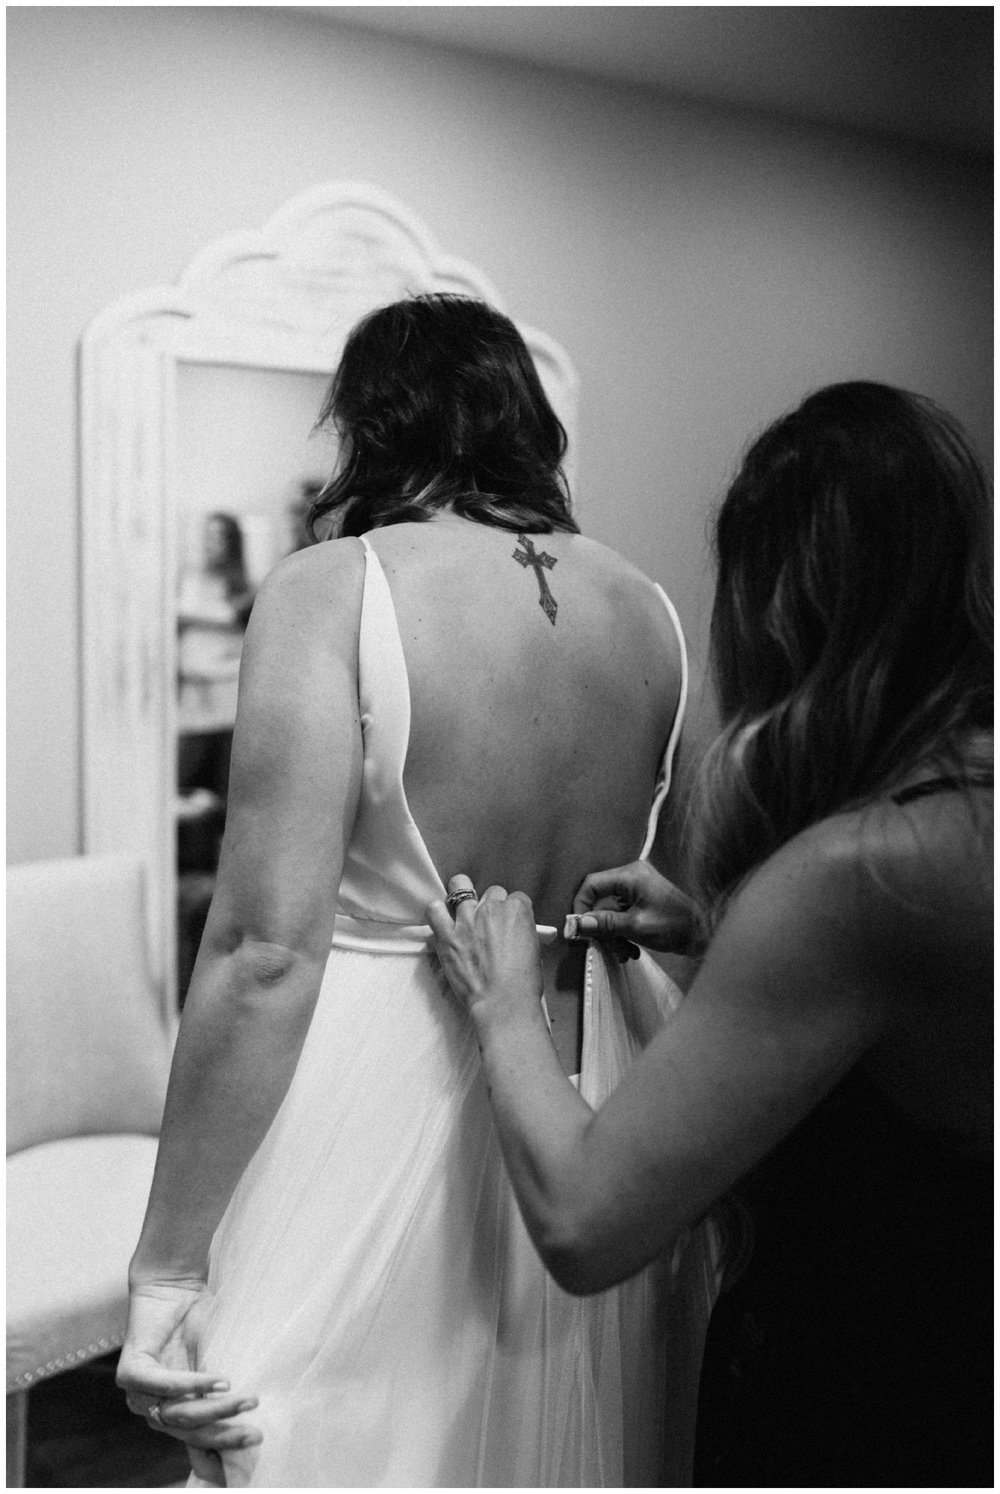 Documentary wedding photography at 7 vines winery